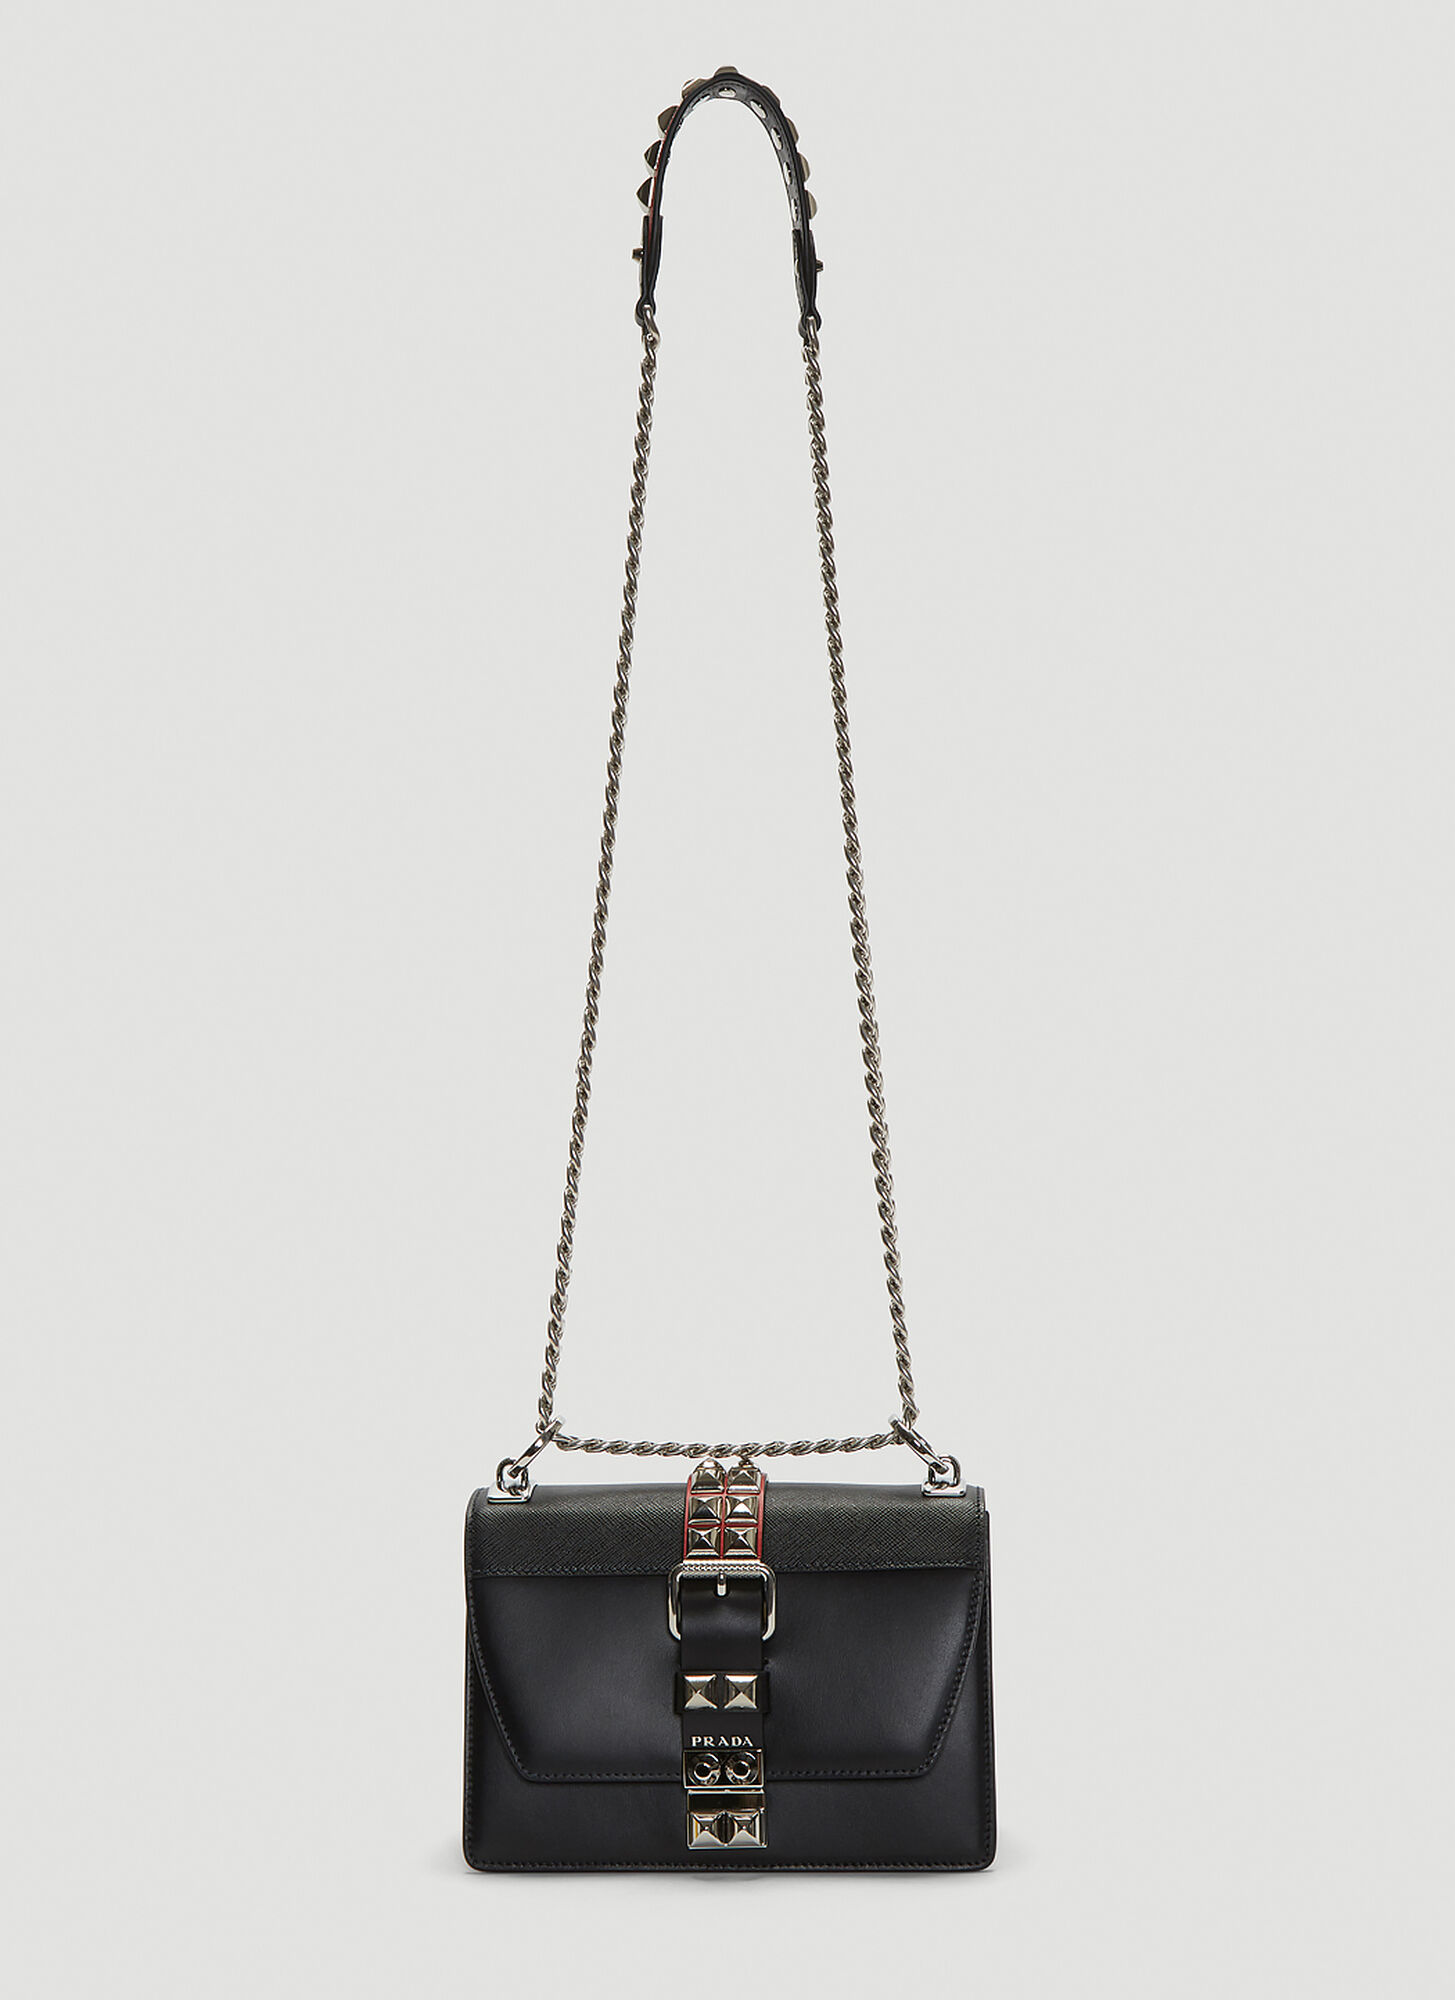 Prada Electra Medium Bag in Black